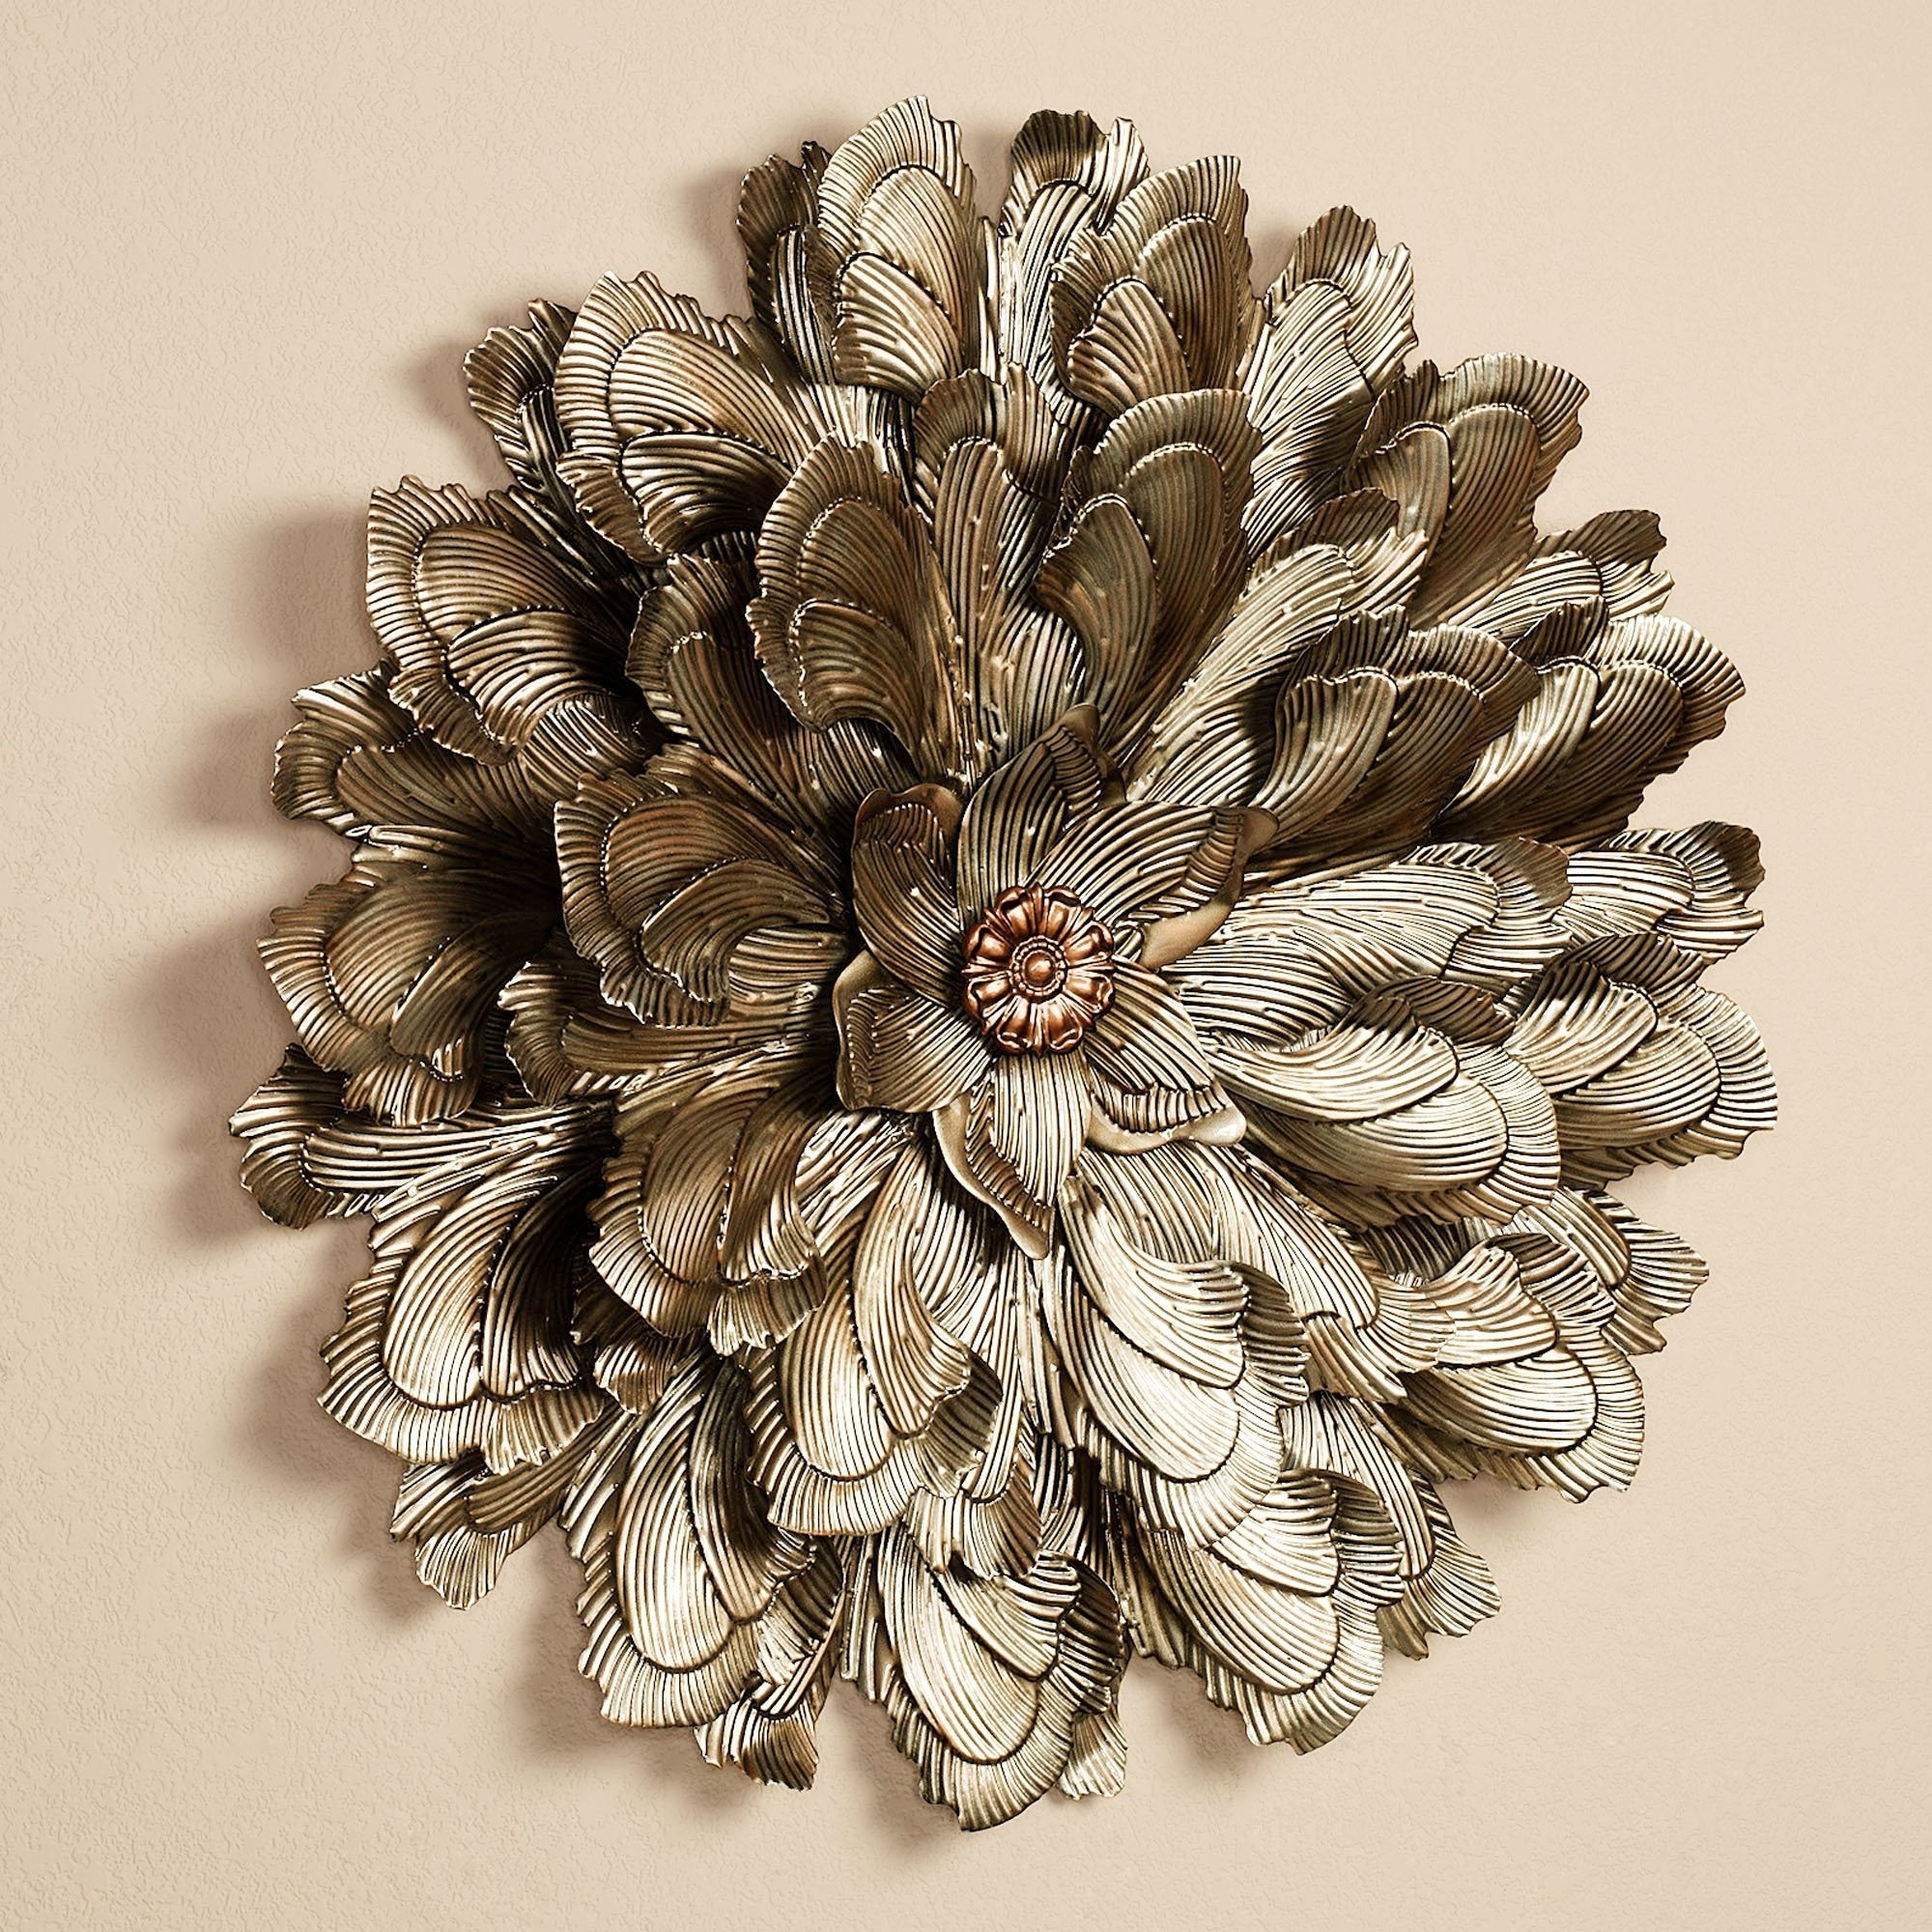 Delicate Flower Blossom Metal Wall Sculpture, Metal Flower Wall Art With Metal Flower Wall Art (View 13 of 20)